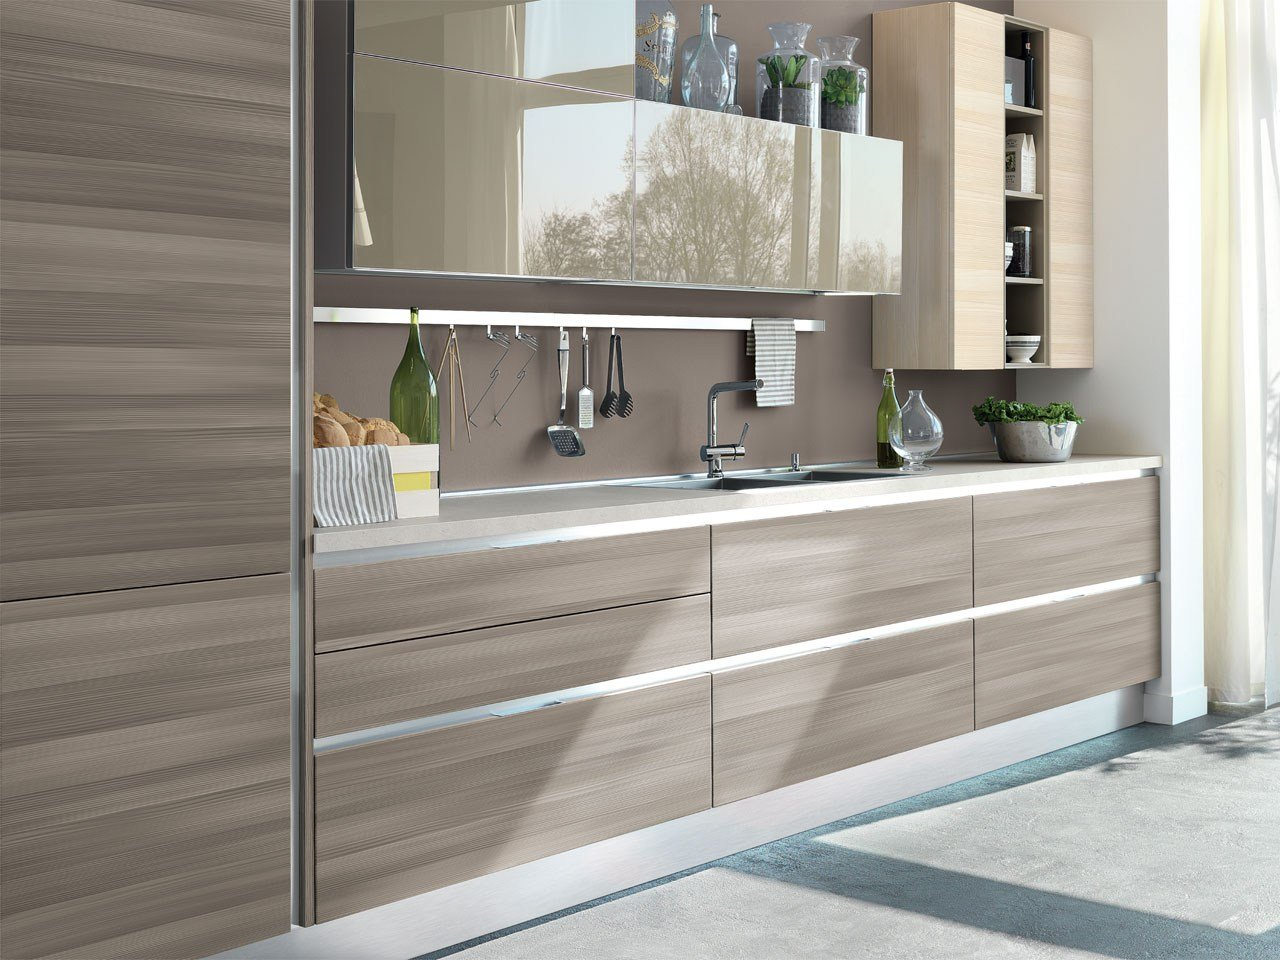 Essenza cuisine int gr e by cucine lube for Cuisine integree bois